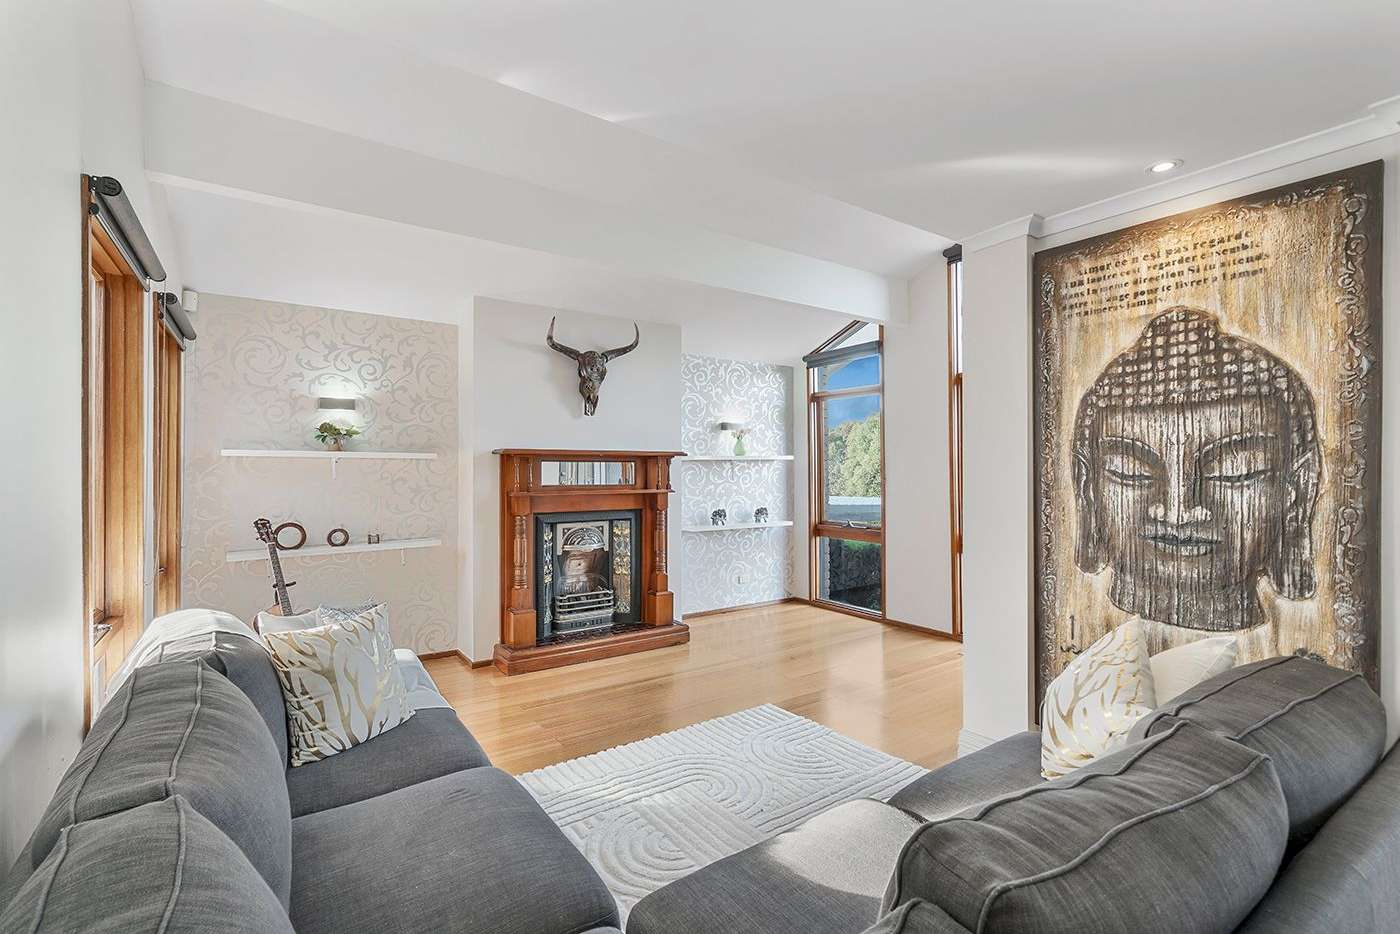 Fifth view of Homely house listing, 63 Haverbrack Drive, Mulgrave VIC 3170